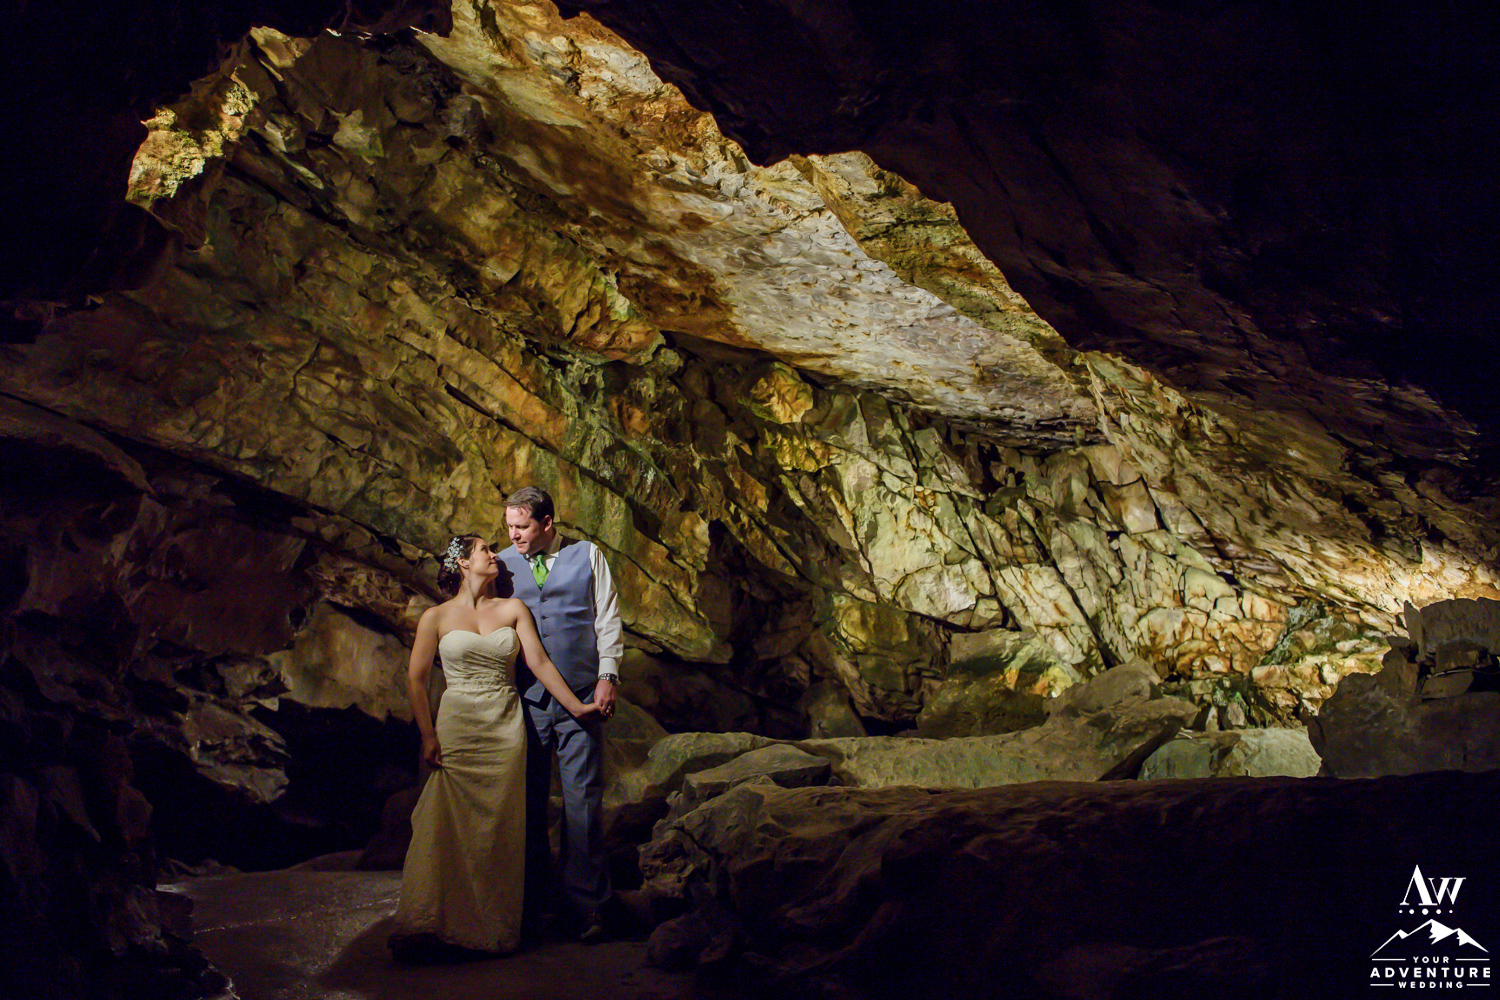 st beatus caves switzerland wedding photos